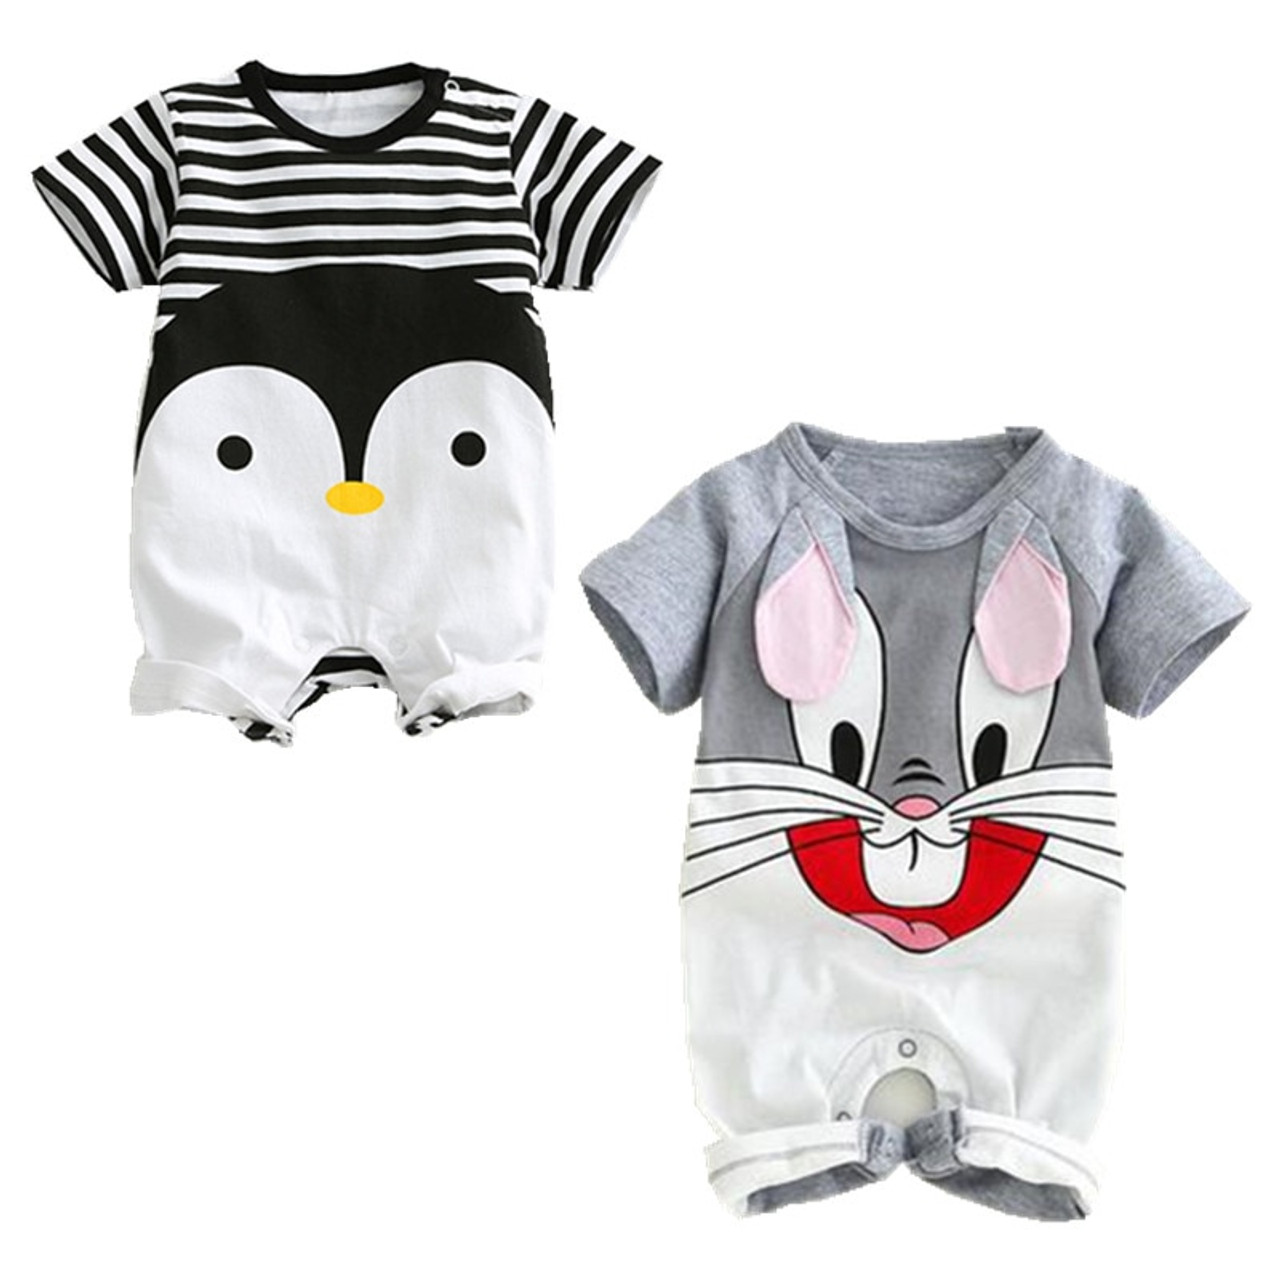 2edccc99b6c40 Cartoon Animals Monkey Cotton Baby Rompers Rabbit Short-Sleeve Baby Boy  Clothes Summer Monkey Infant ...